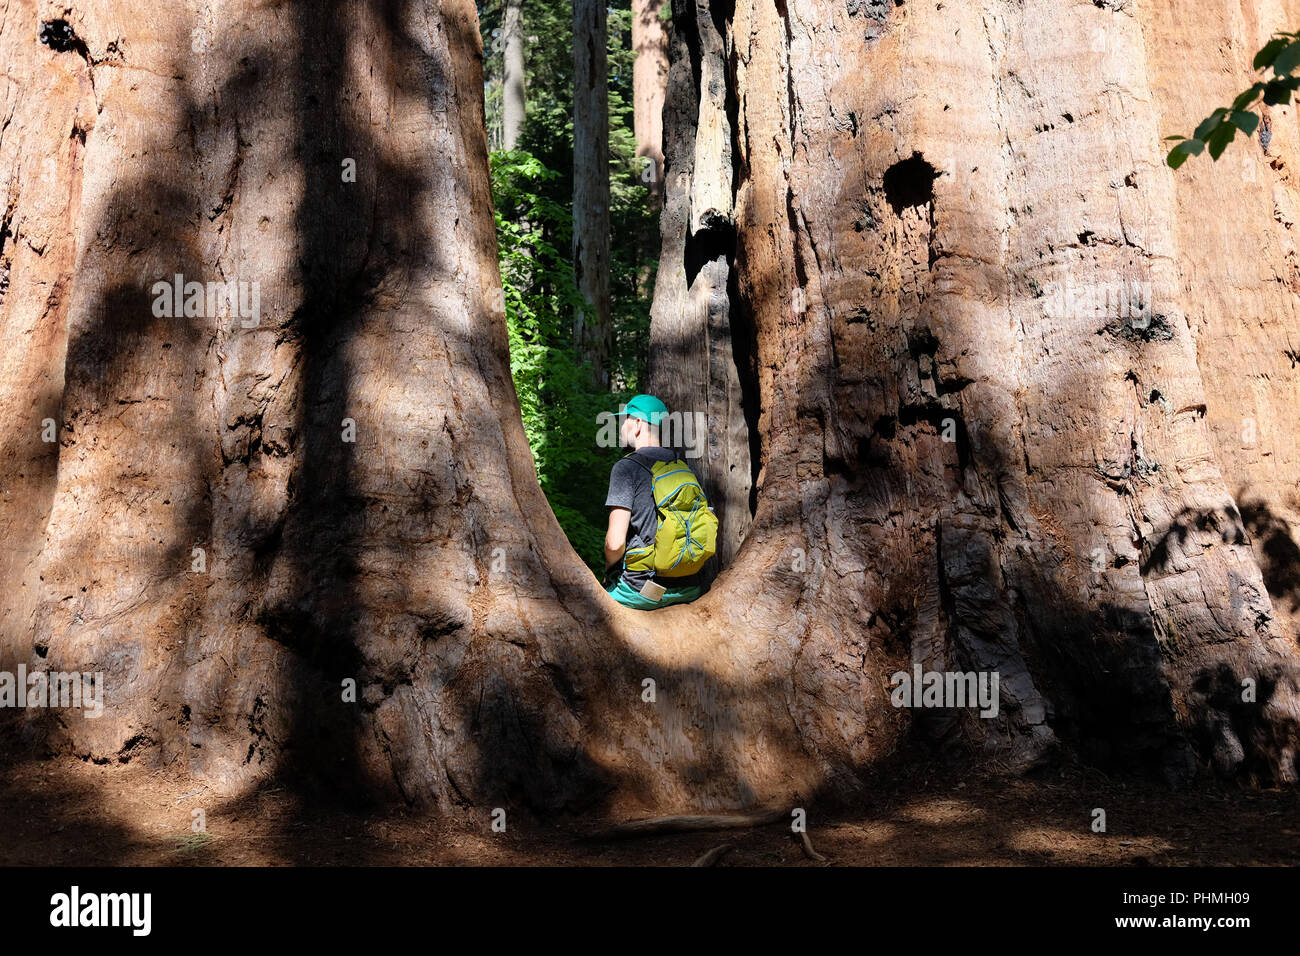 Tourist with backpack hiking among sequoia redwoods - Stock Image